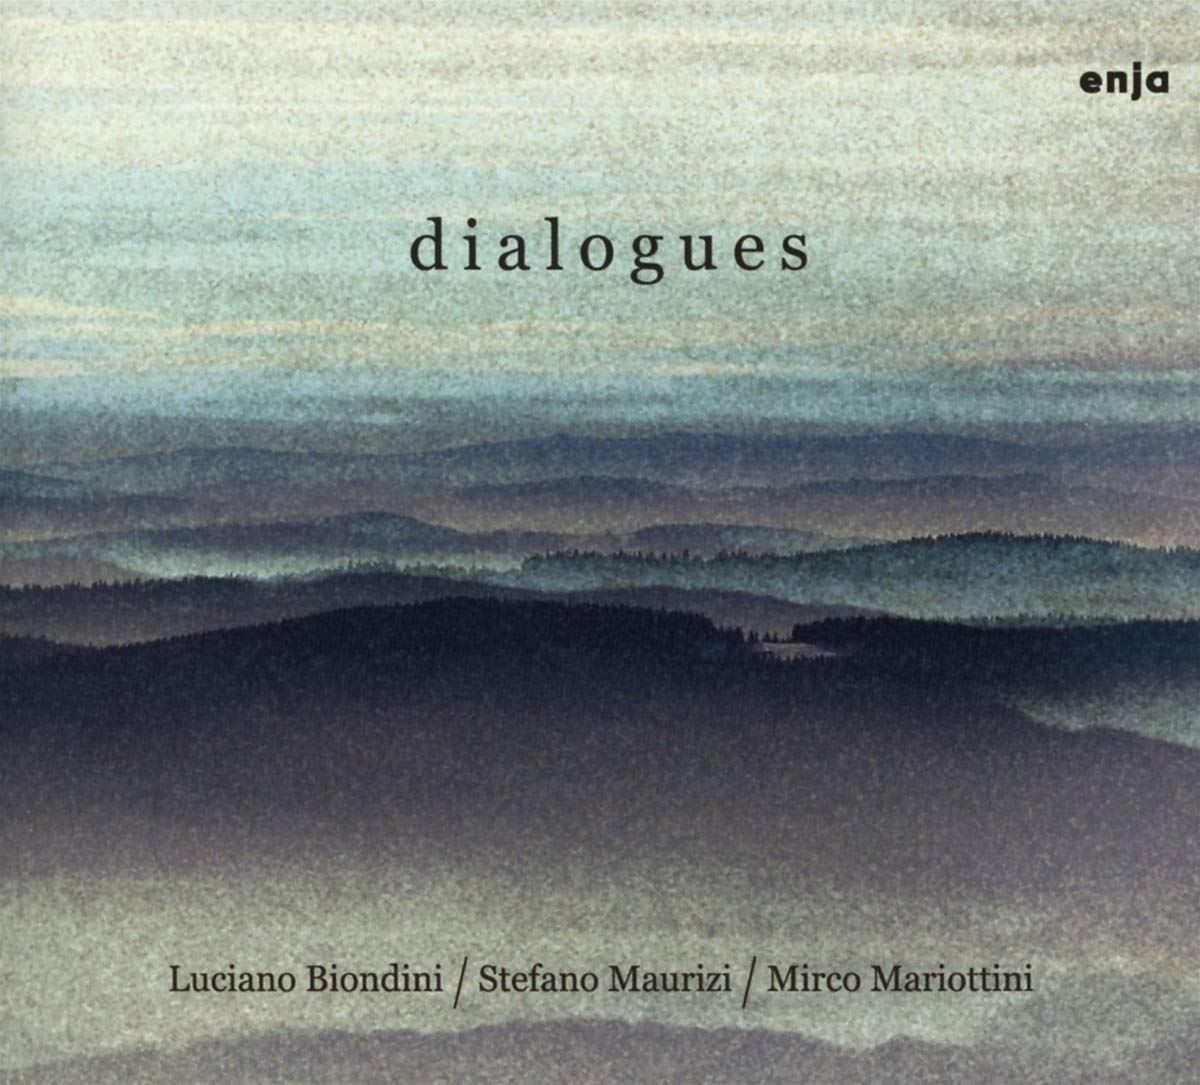 LUCIANO BIONDINI - Dialogues cover